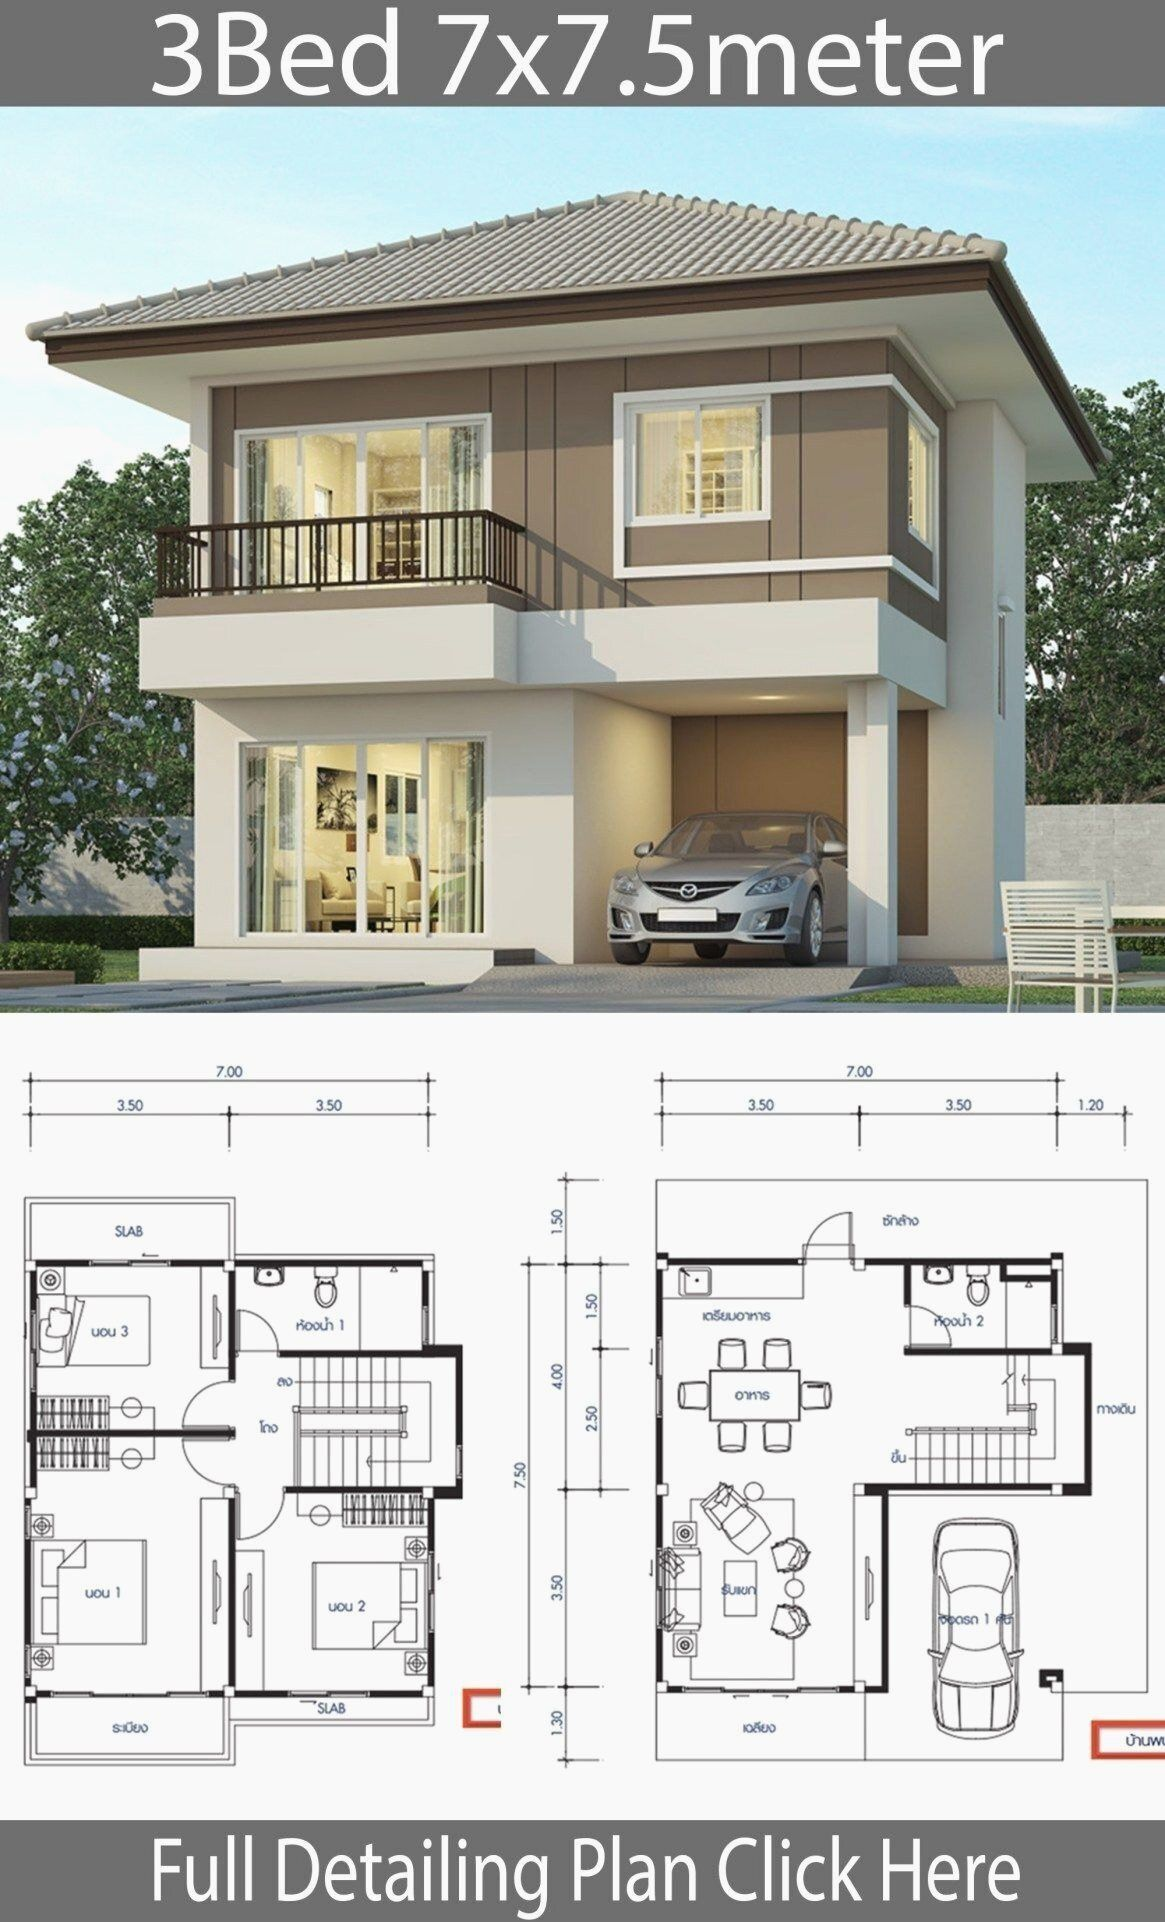 House Design Plan 7x7 5m With 3 Bedrooms Home Ideas House Design Plan 7 7 5m With 3 Bedro In 2020 Bungalow House Design Duplex House Design 2 Storey House Design